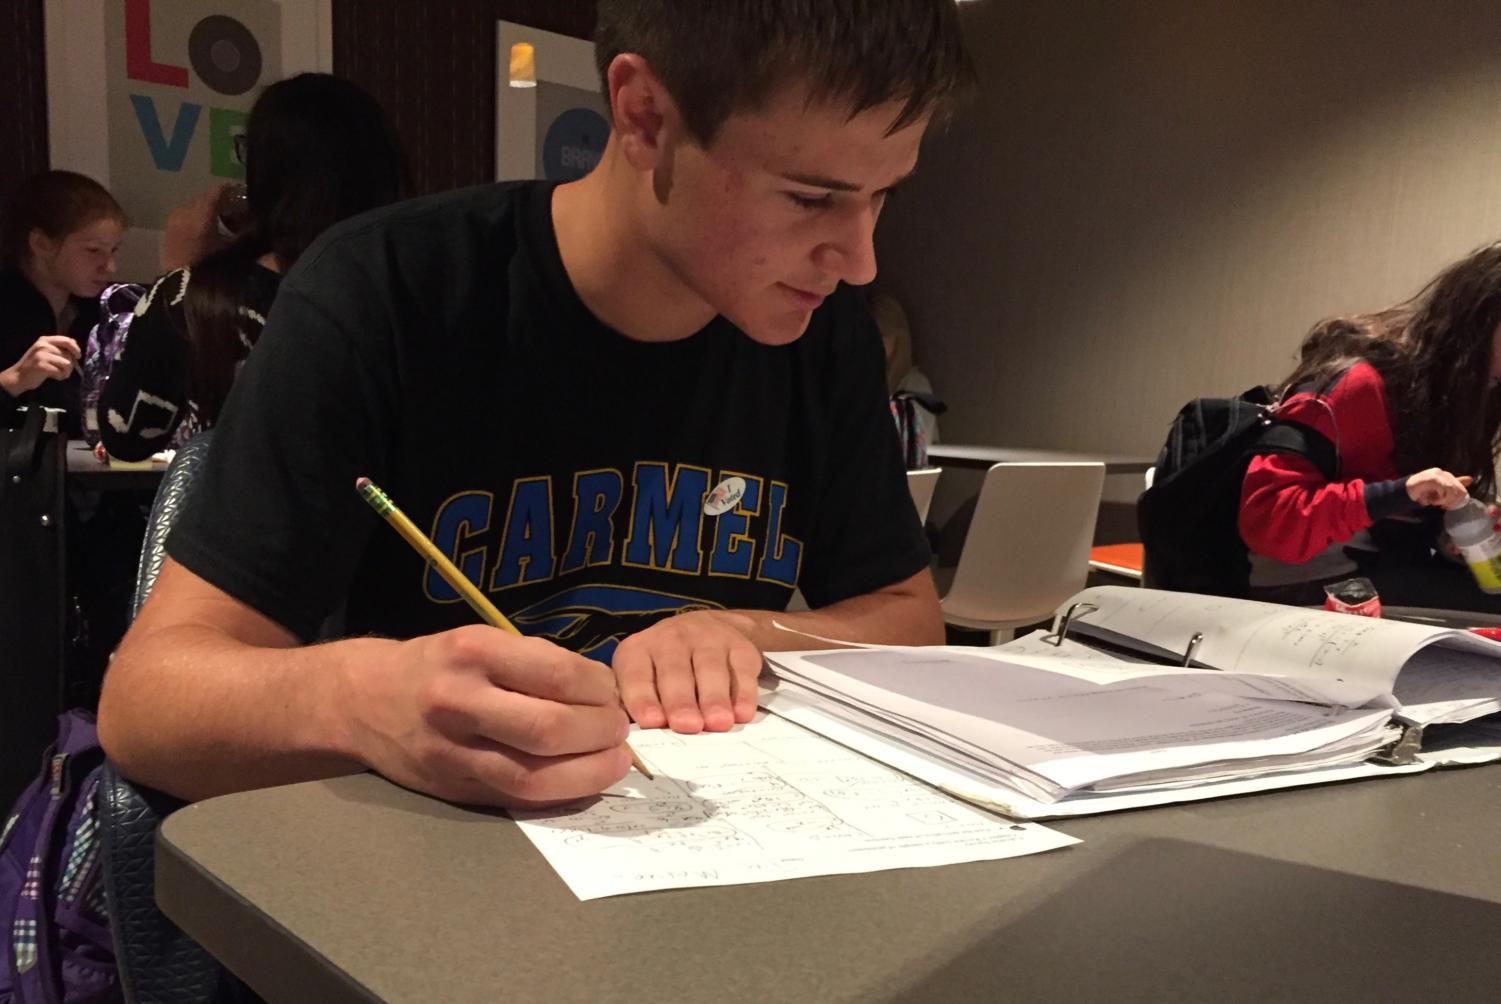 Student body president Tim Metken works on homework in the Carmel Café. Metken said he doesn't think potential plans for a later school start time would be beneficial to students because of extracurricular activities.